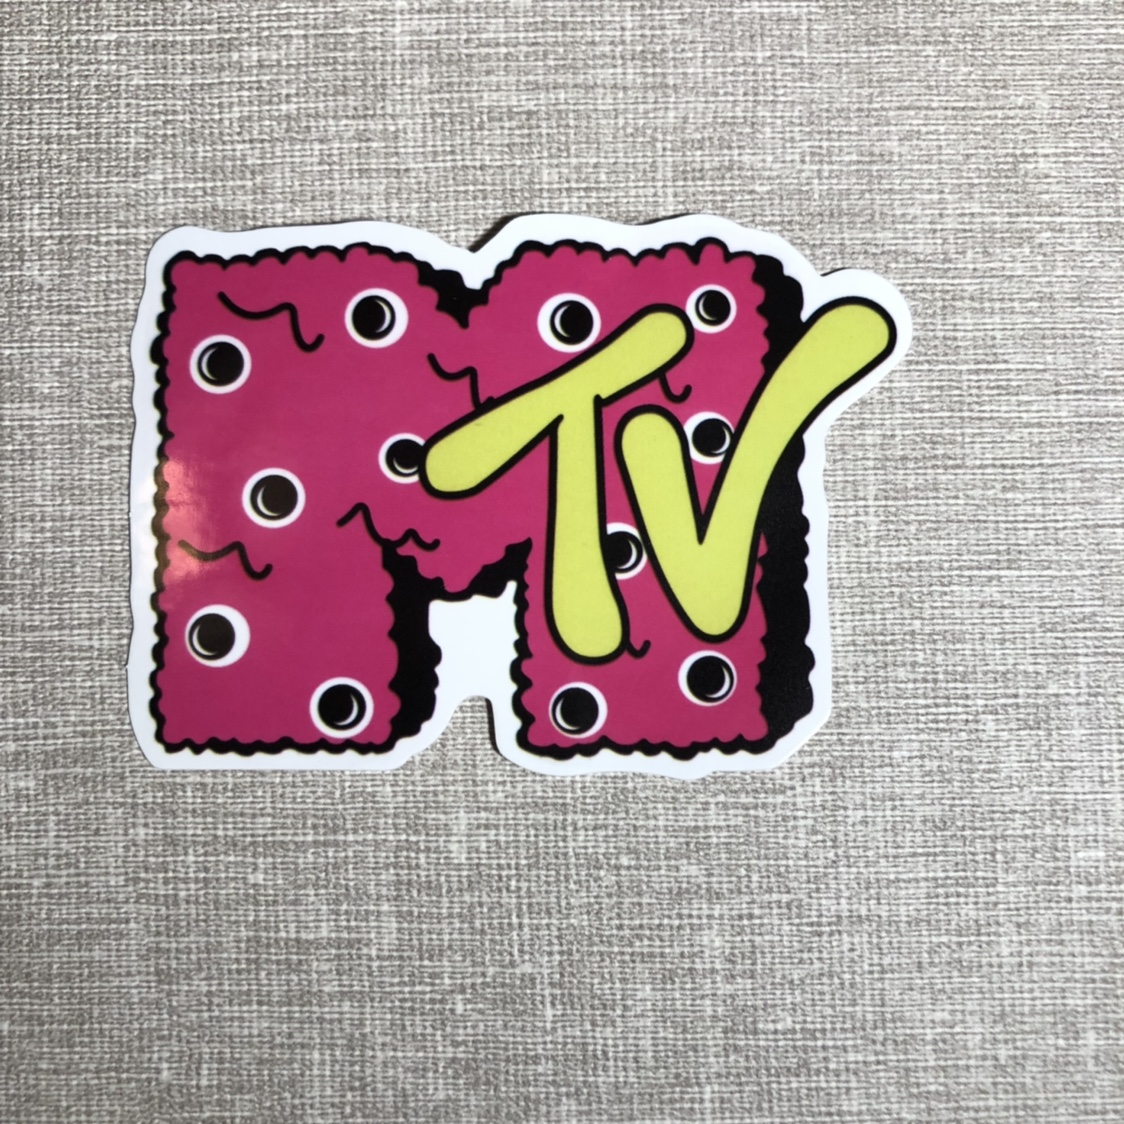 """Fuzzy"""" Pink & Yellow MTV sticker❣️ This is such a    - Depop"""